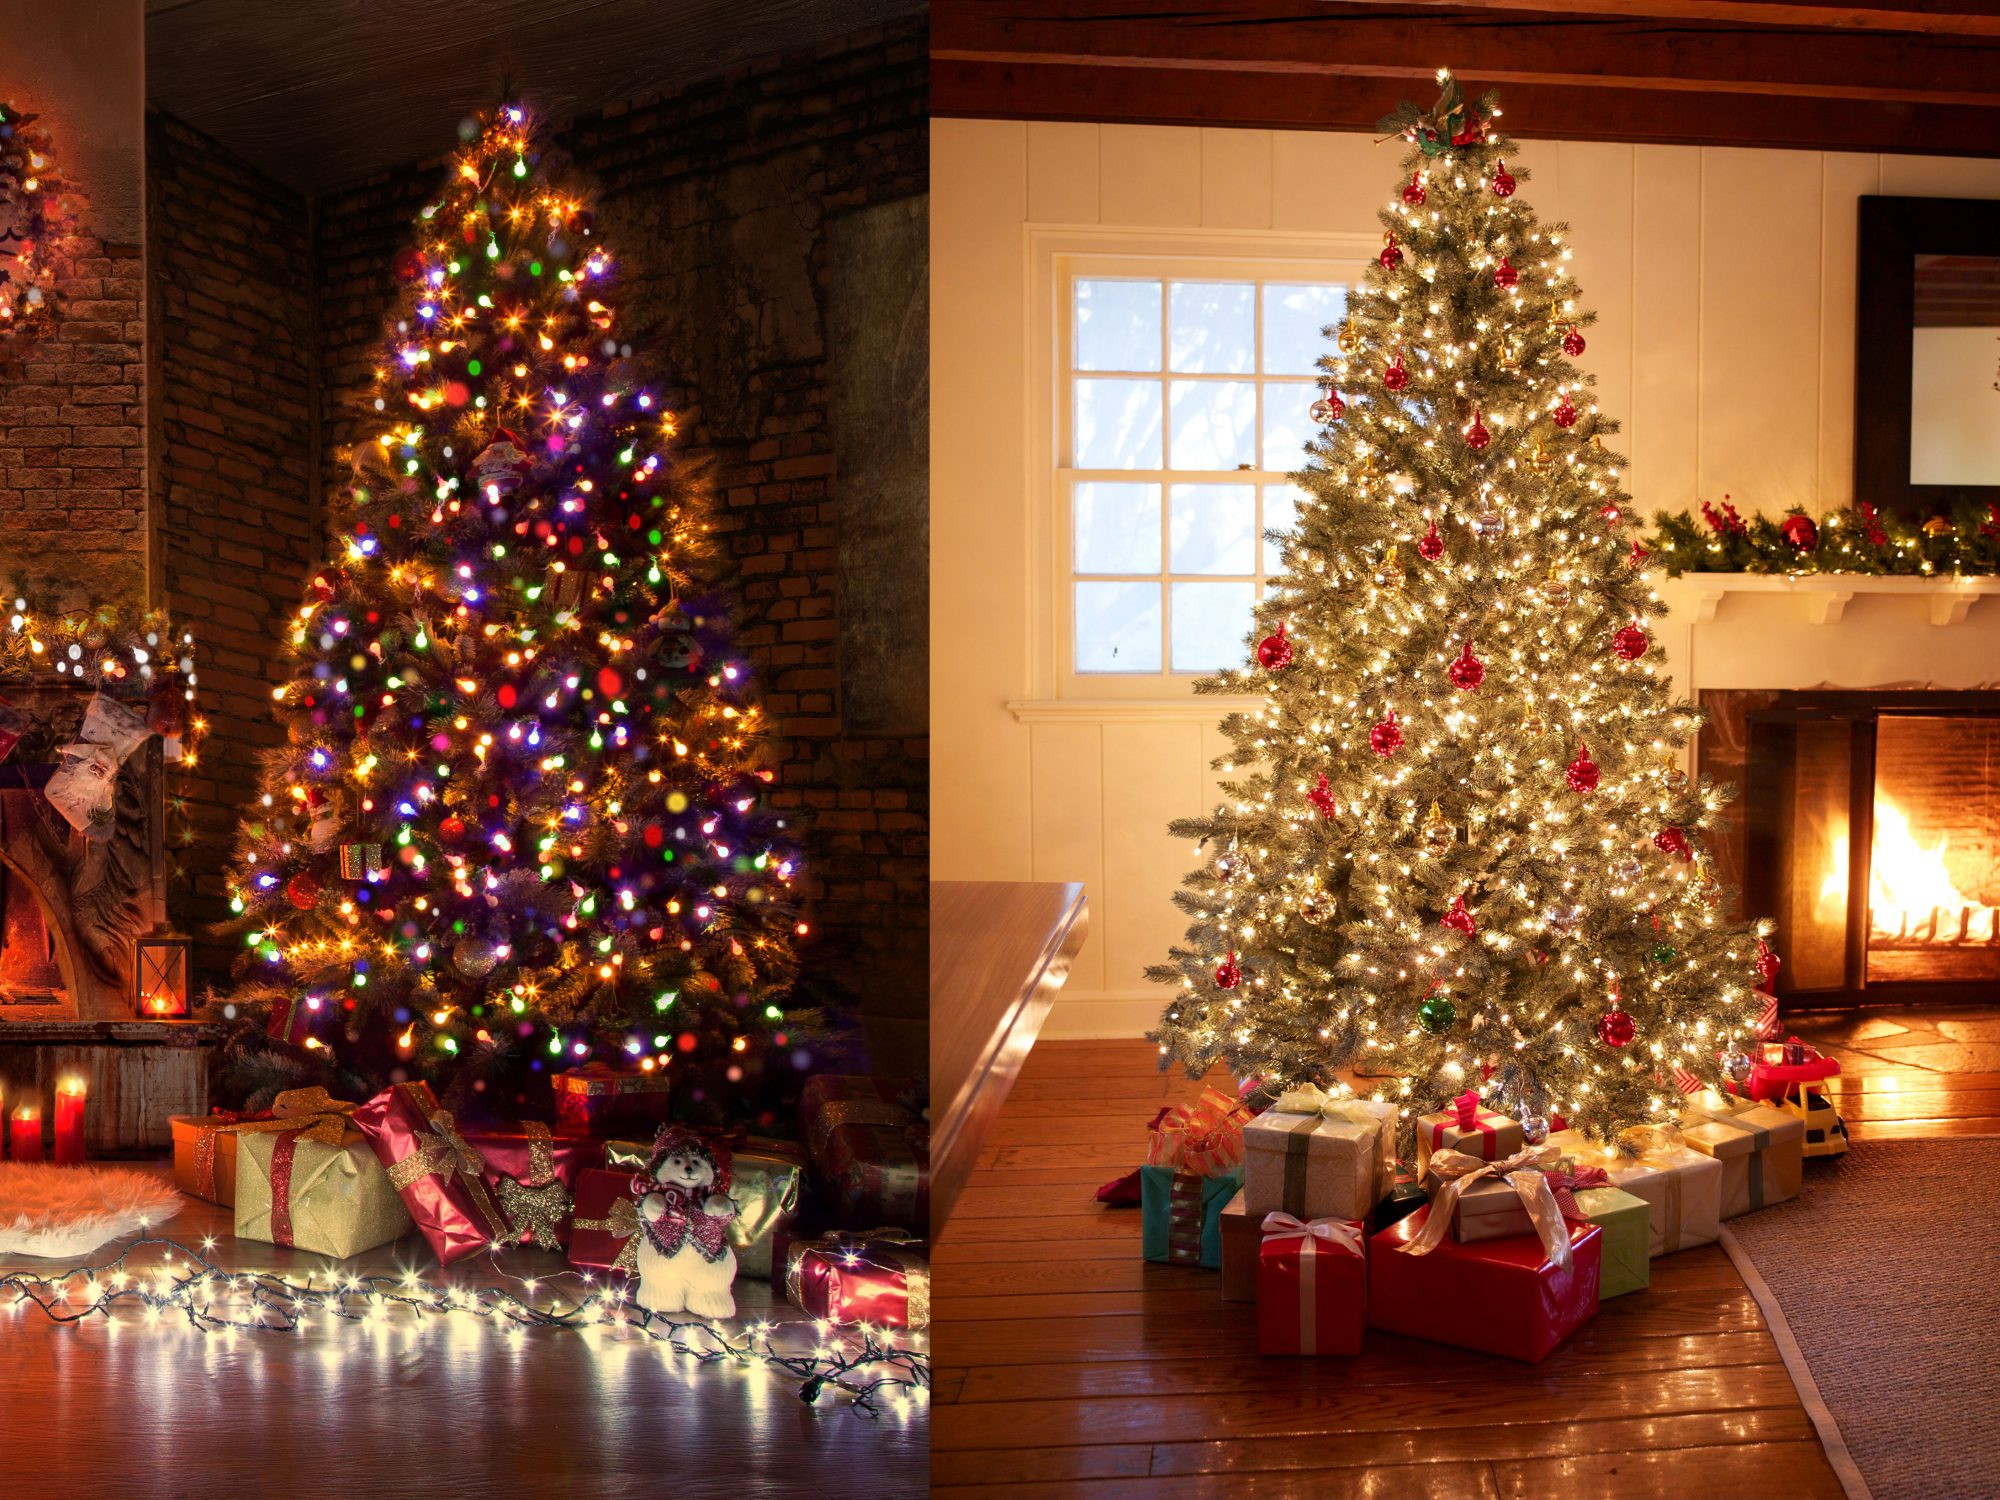 Do You Hang White Or Colored Christmas Lights?